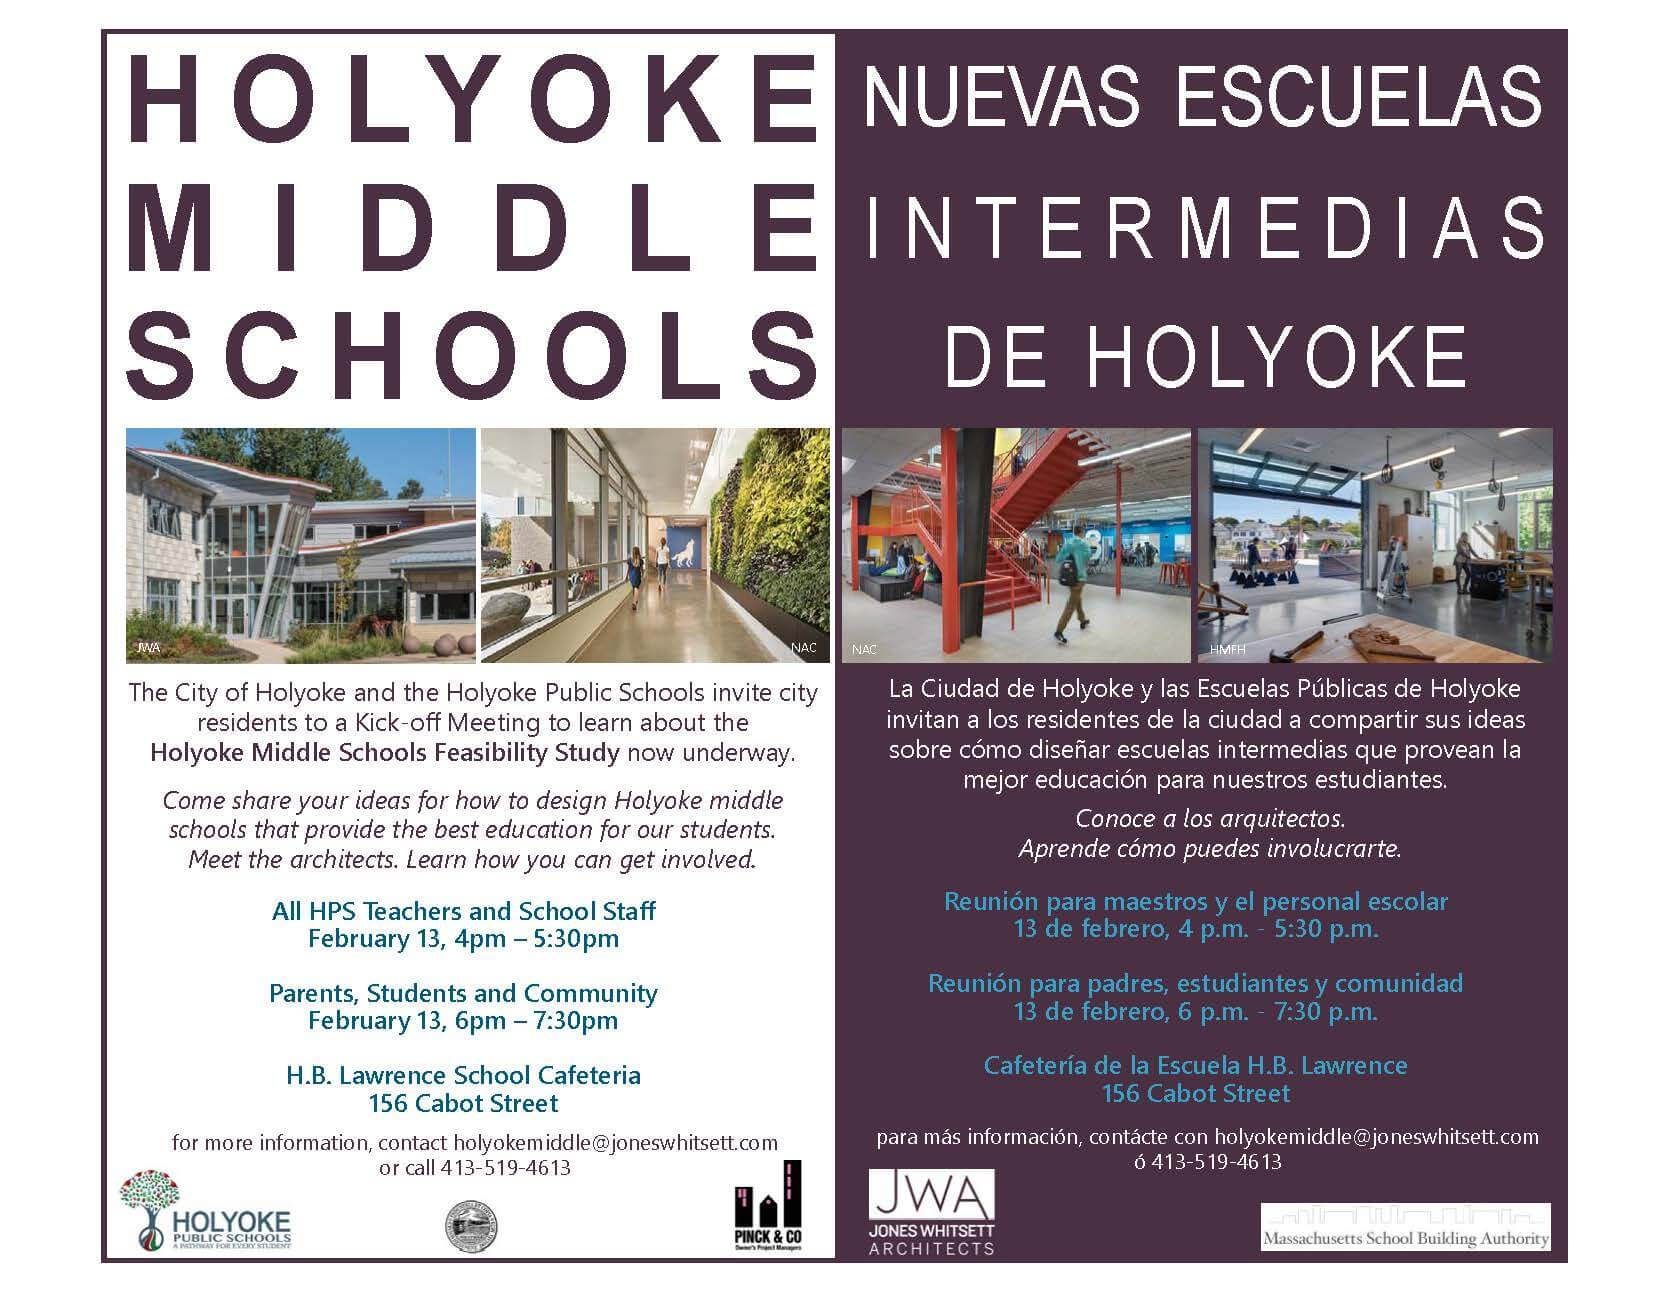 Holyoke Gets Green Light from State to Move Forward with Middle School Feasibility Study